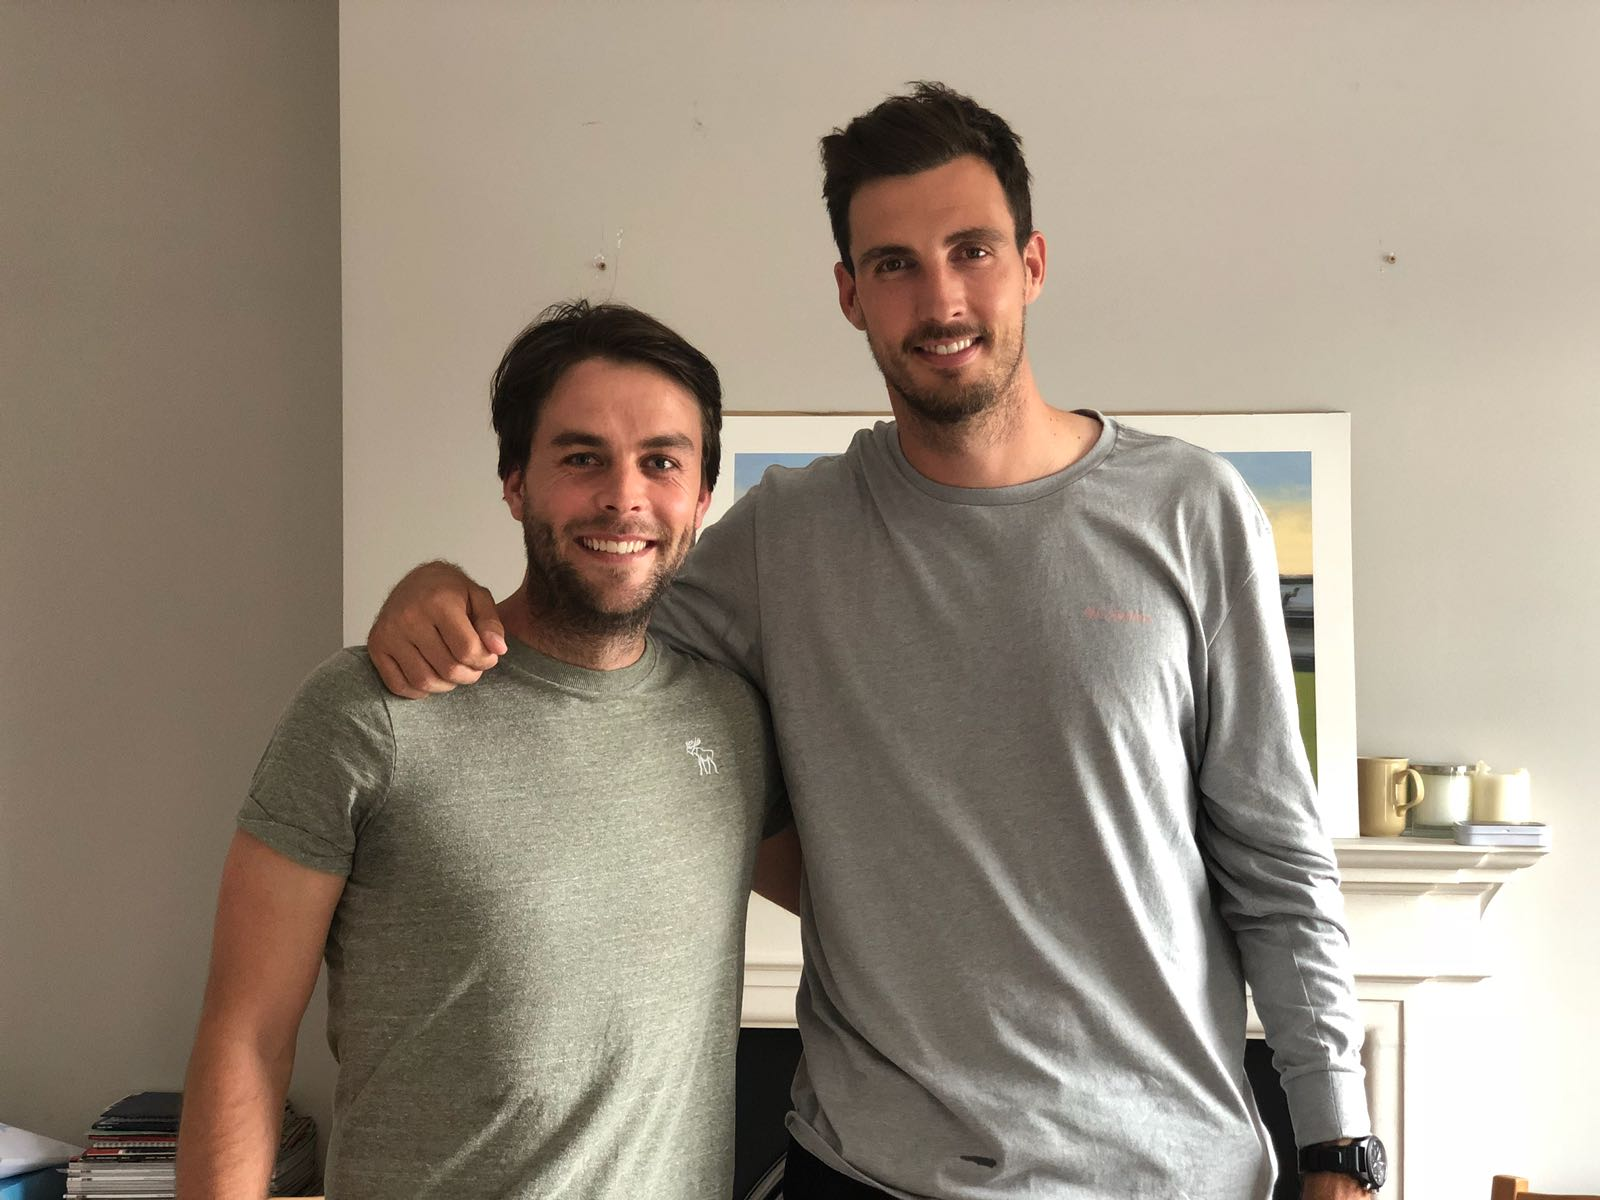 STEVEN FINN ON STAYING POSITIVE & USING NERVES TO YOUR ADVANTAGE